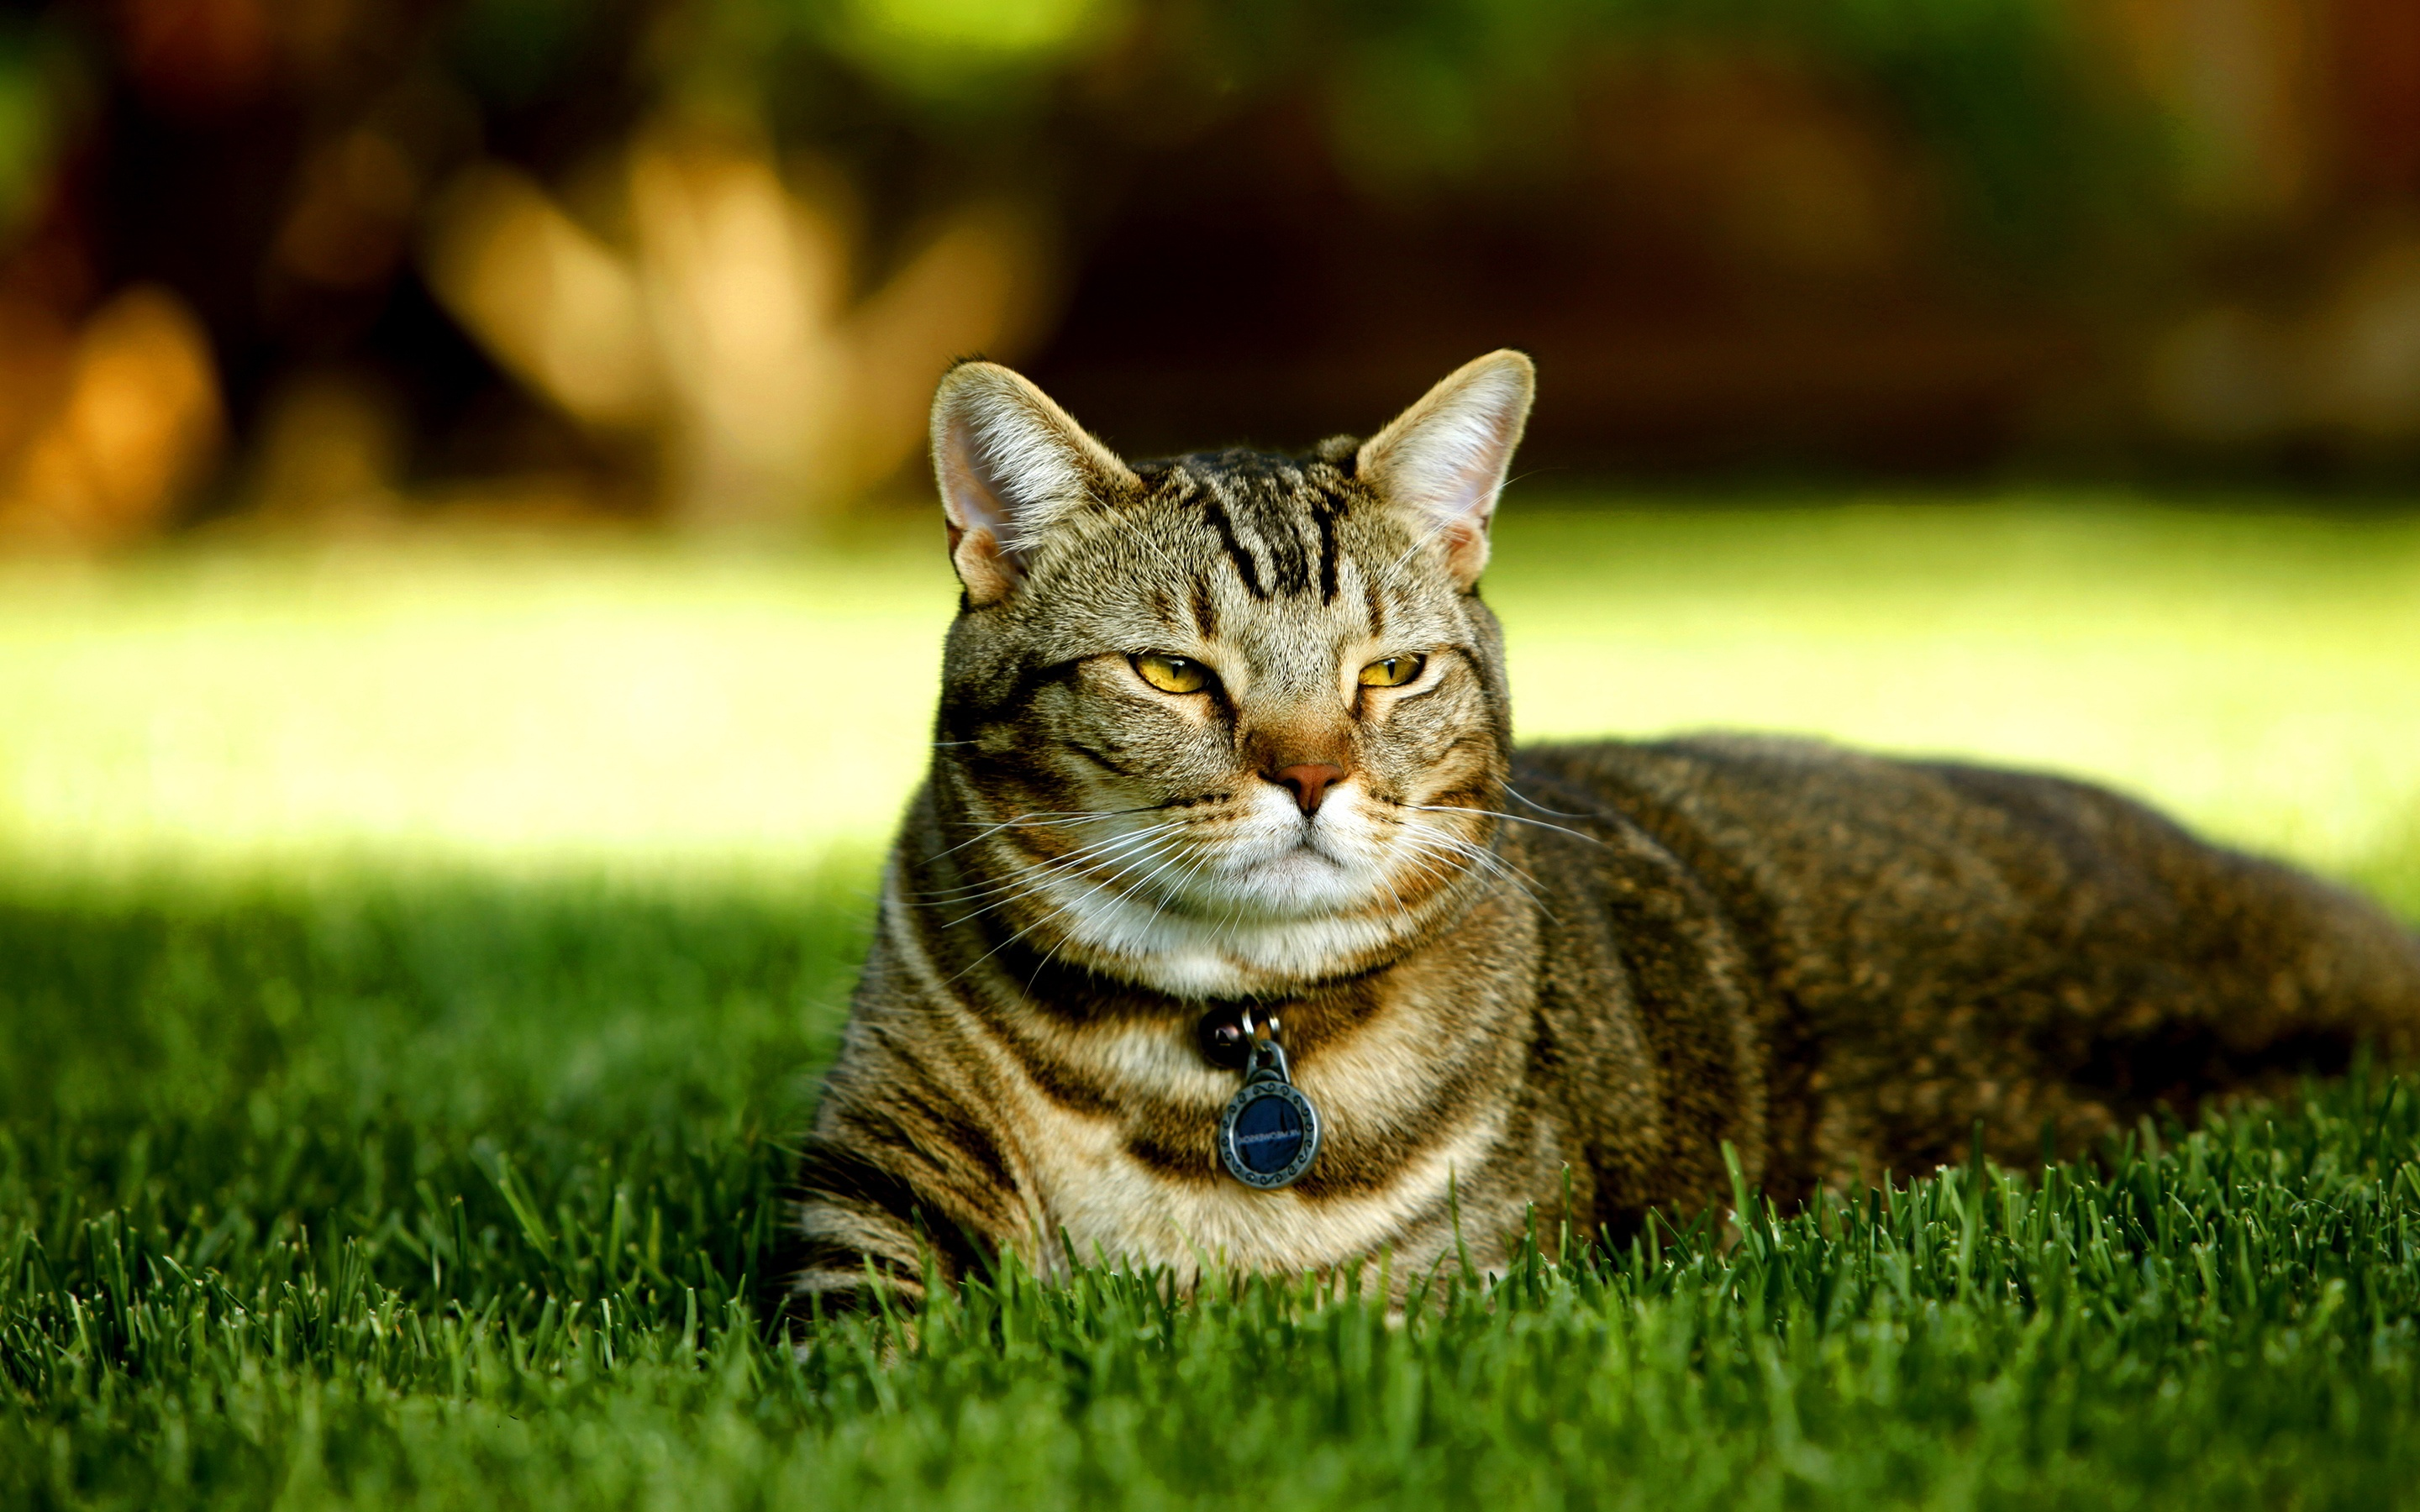 Cute cat lawn Wallpaper in 2880x1800 Retina 15''